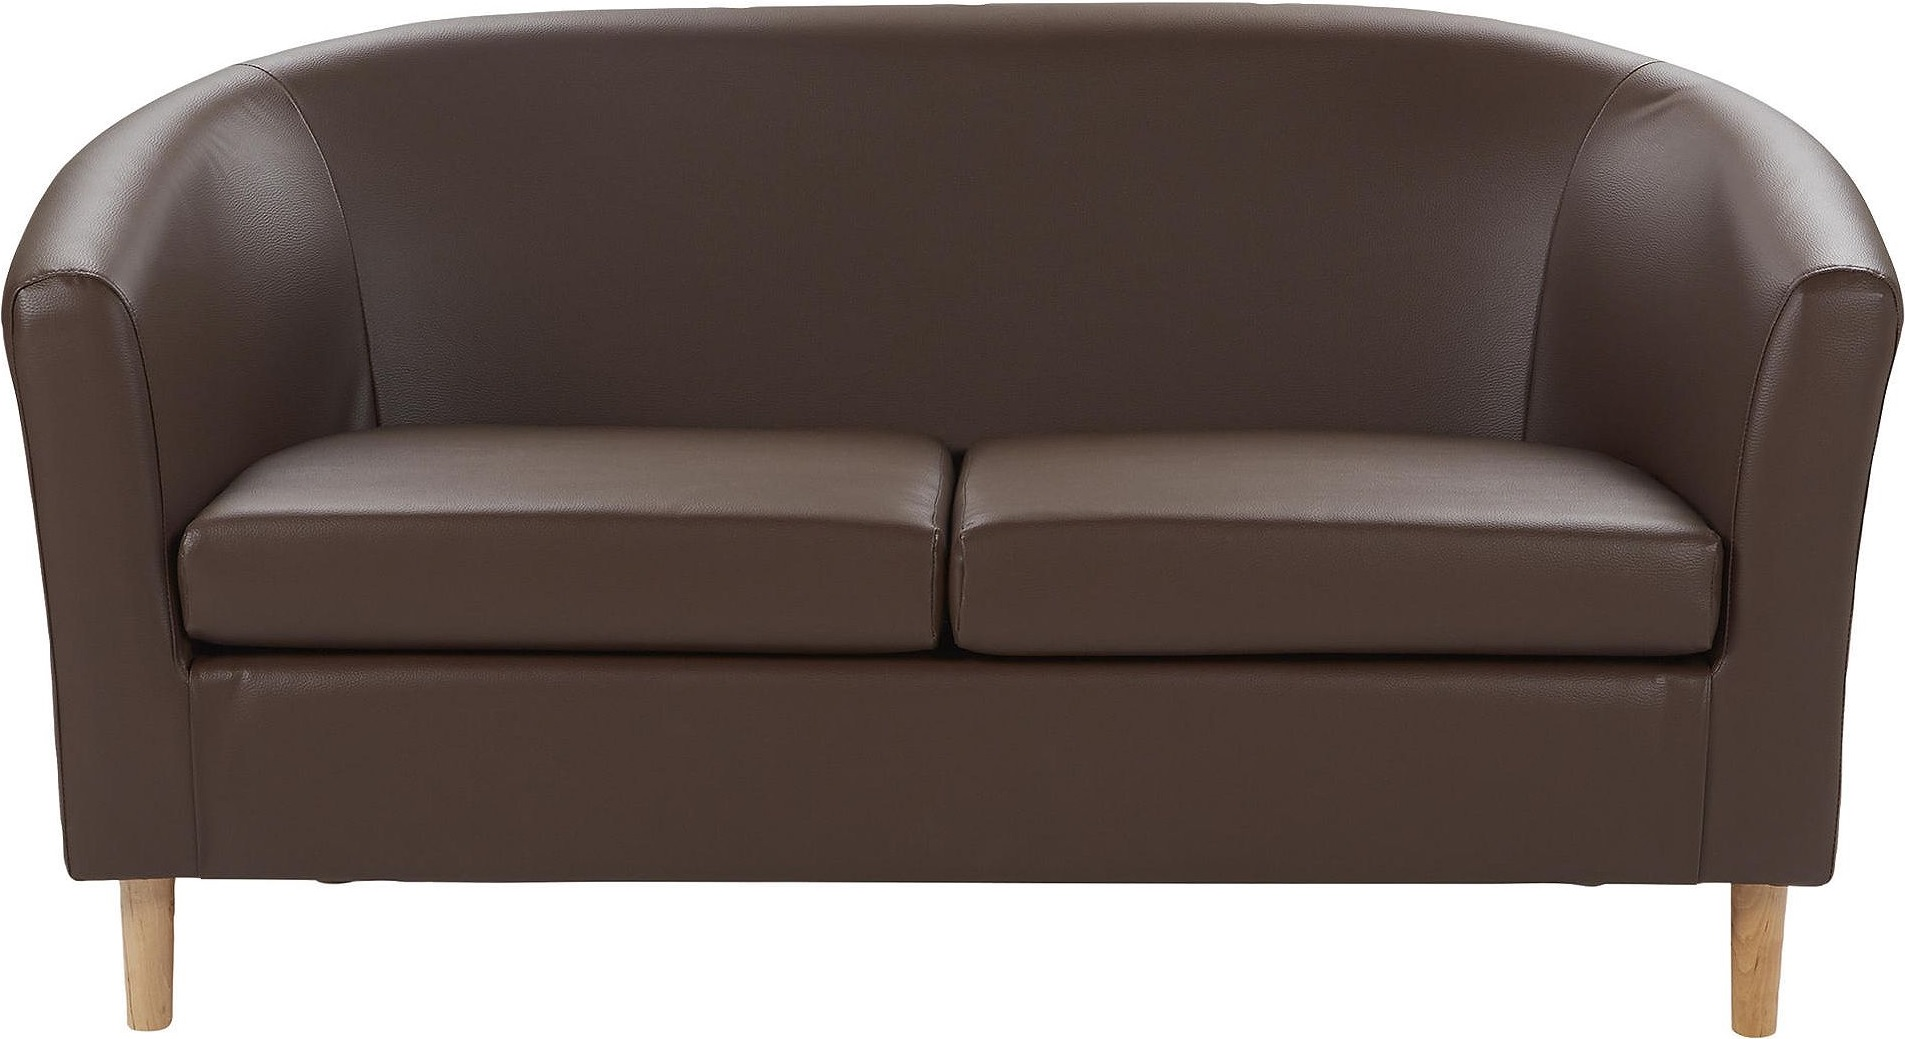 new modern faux leather 2 seater compact tub sofa chocolate. Black Bedroom Furniture Sets. Home Design Ideas